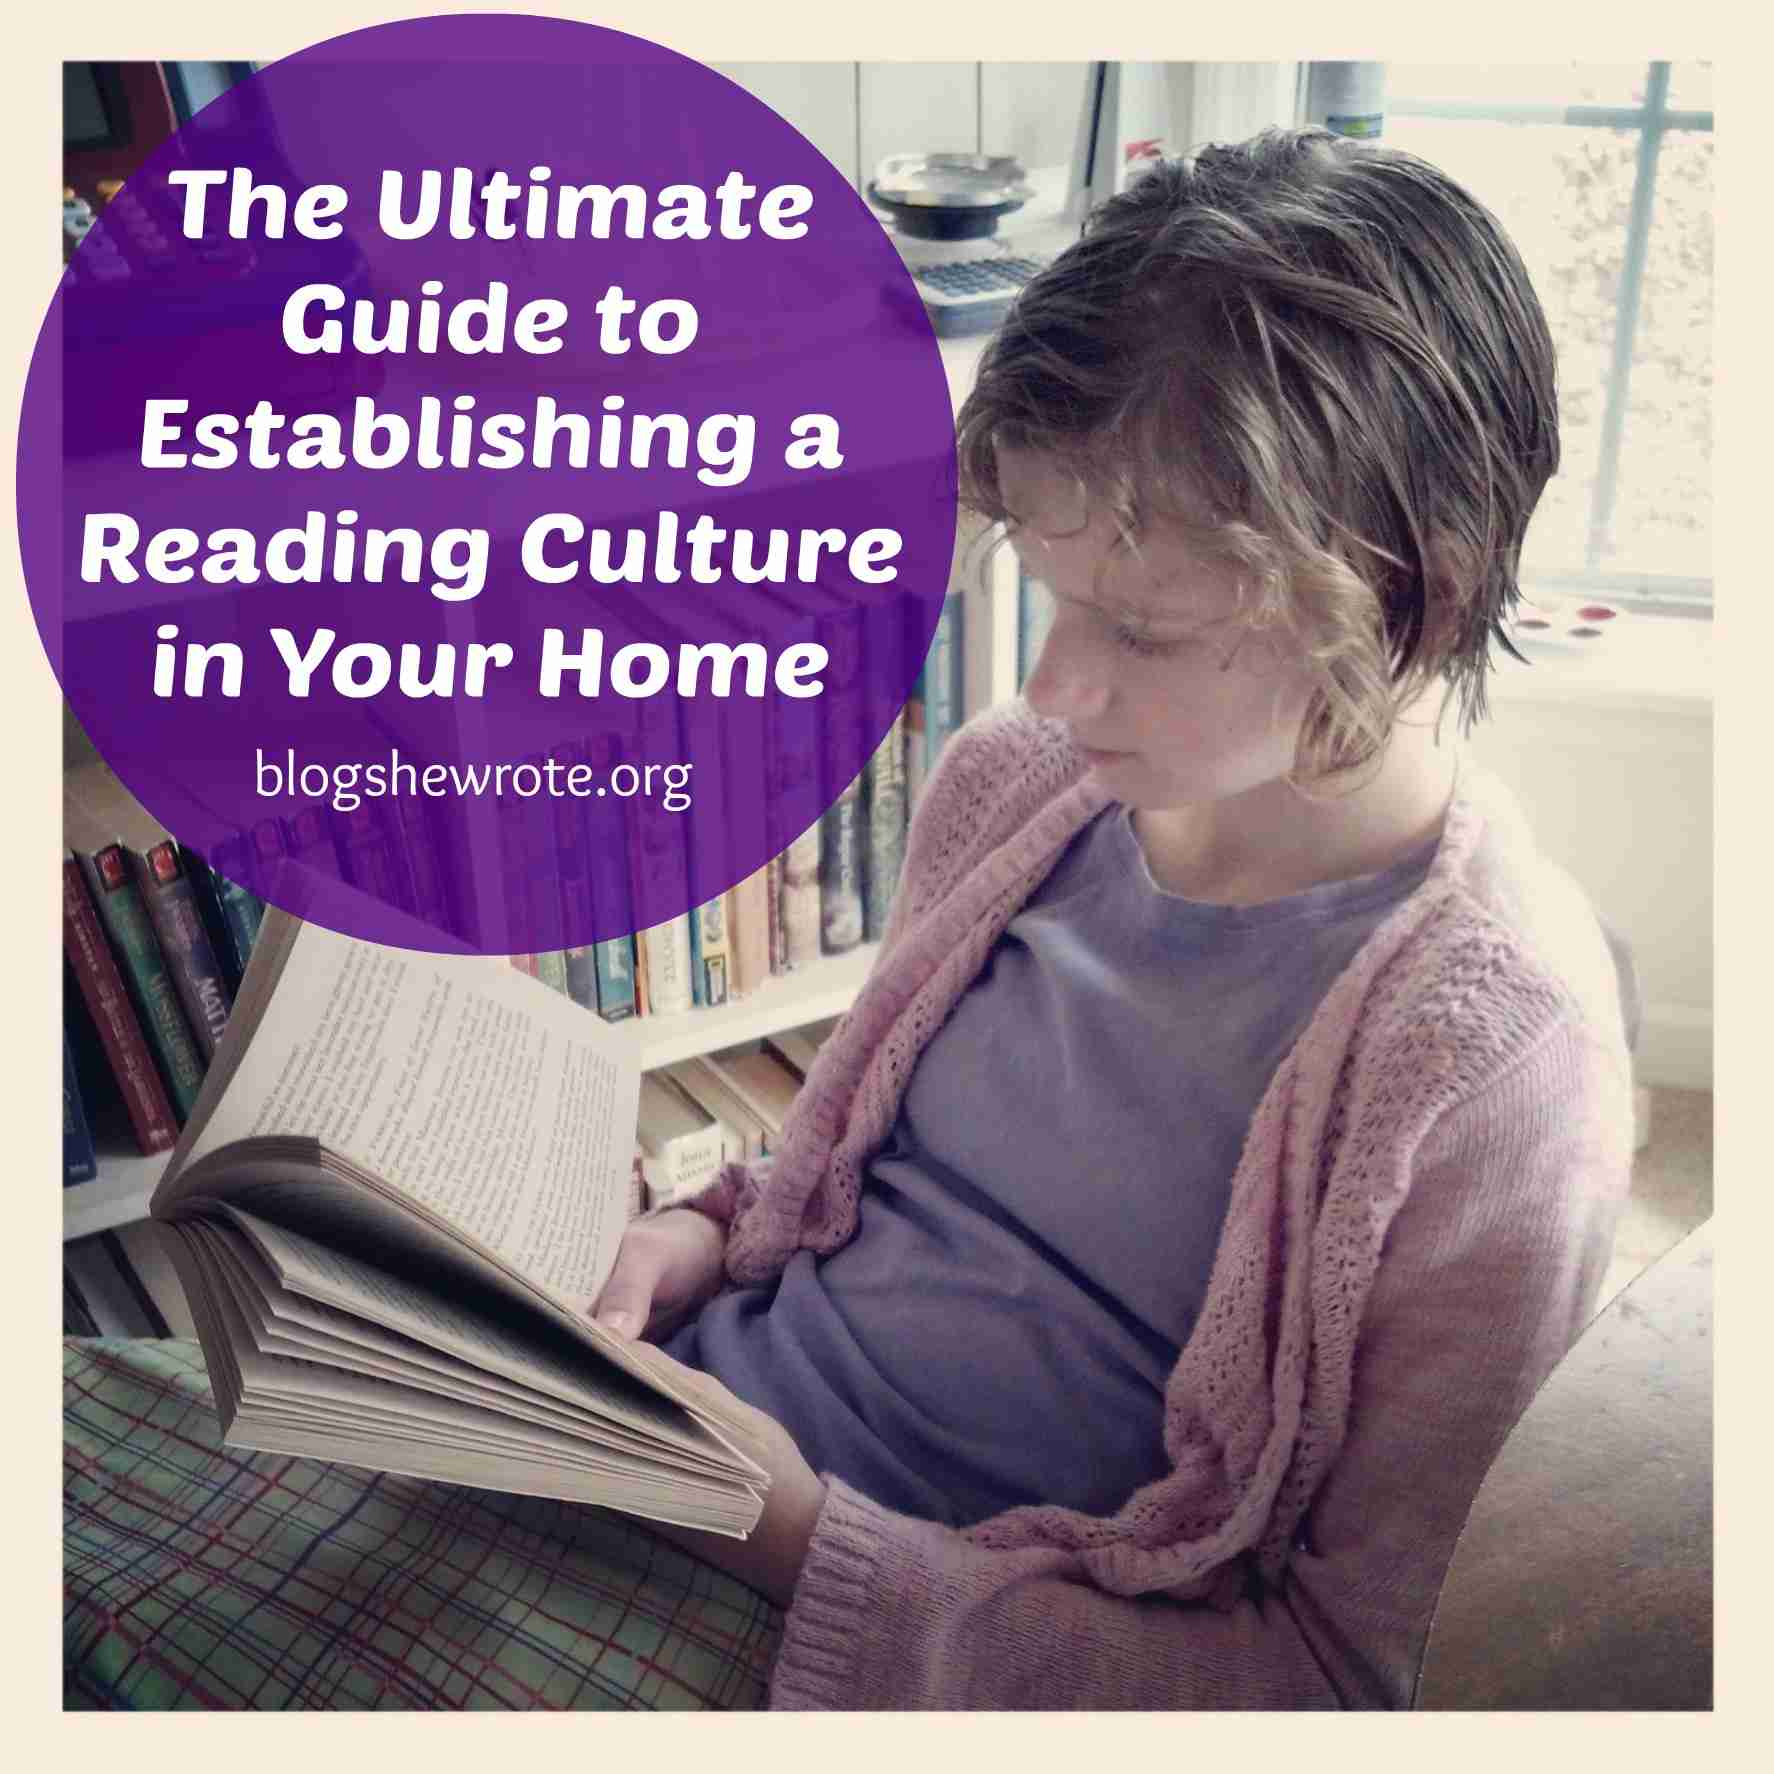 Blog, She Wrote: The Ultimate Guide to Establishing a Reading Culture in Your Home